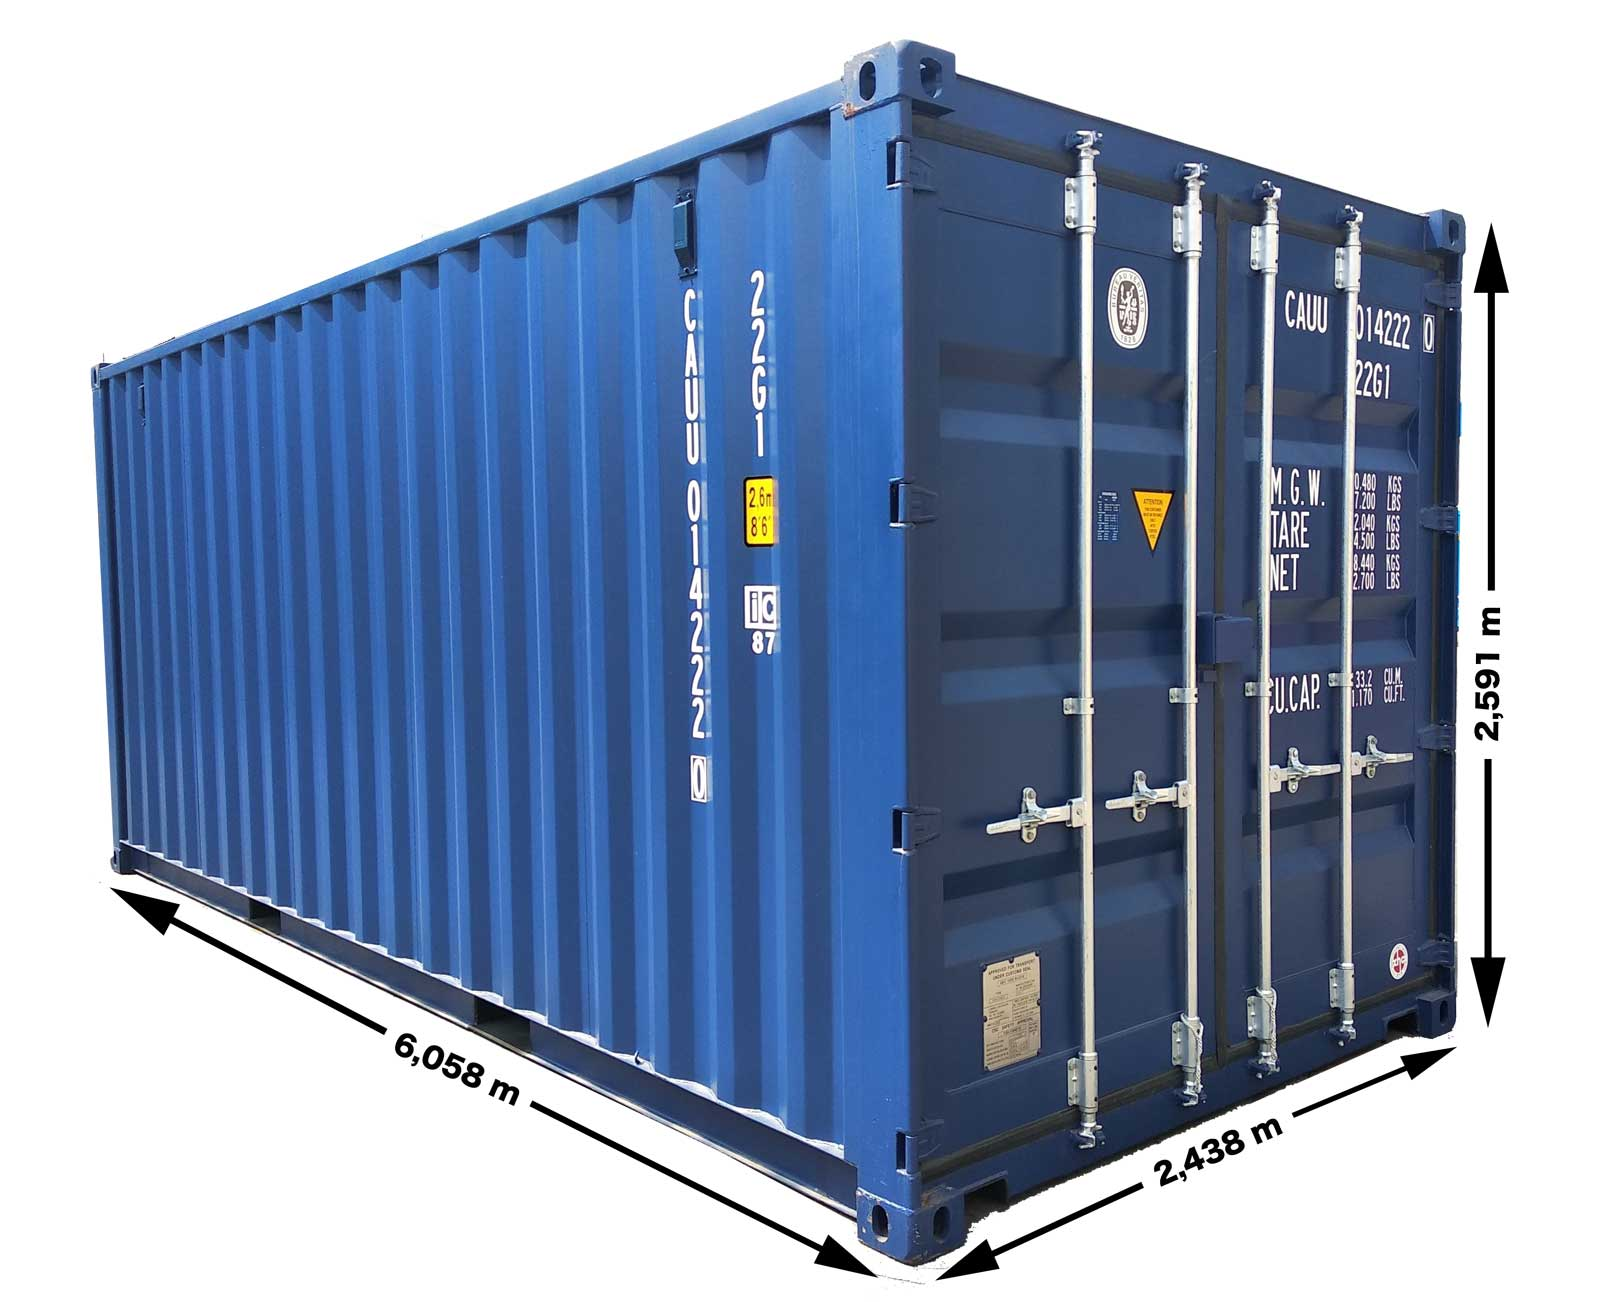 20 fods container mål